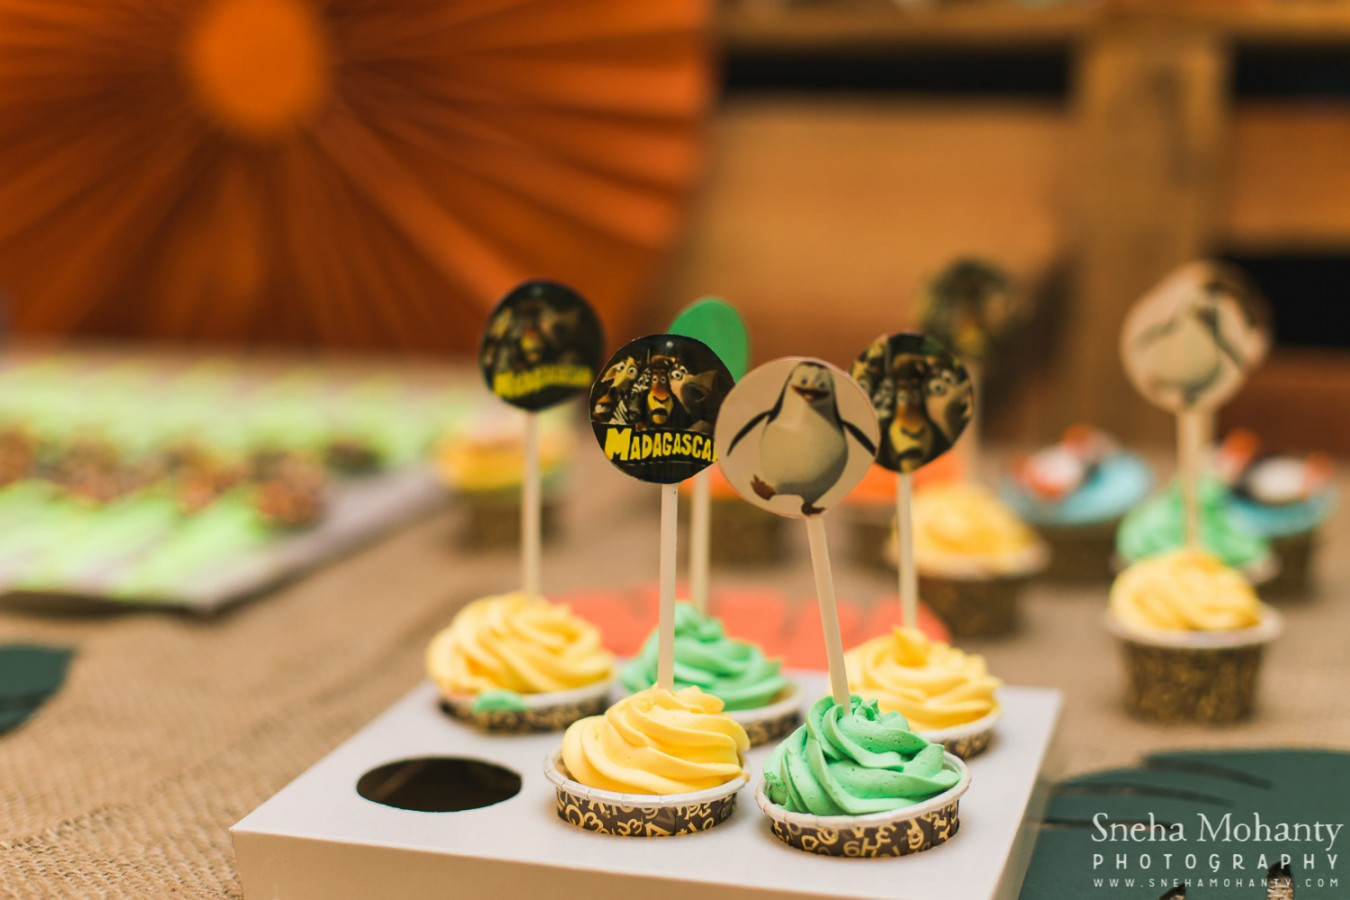 Birthday Party Decorations Gurgaon Image Inspiration of Cake and